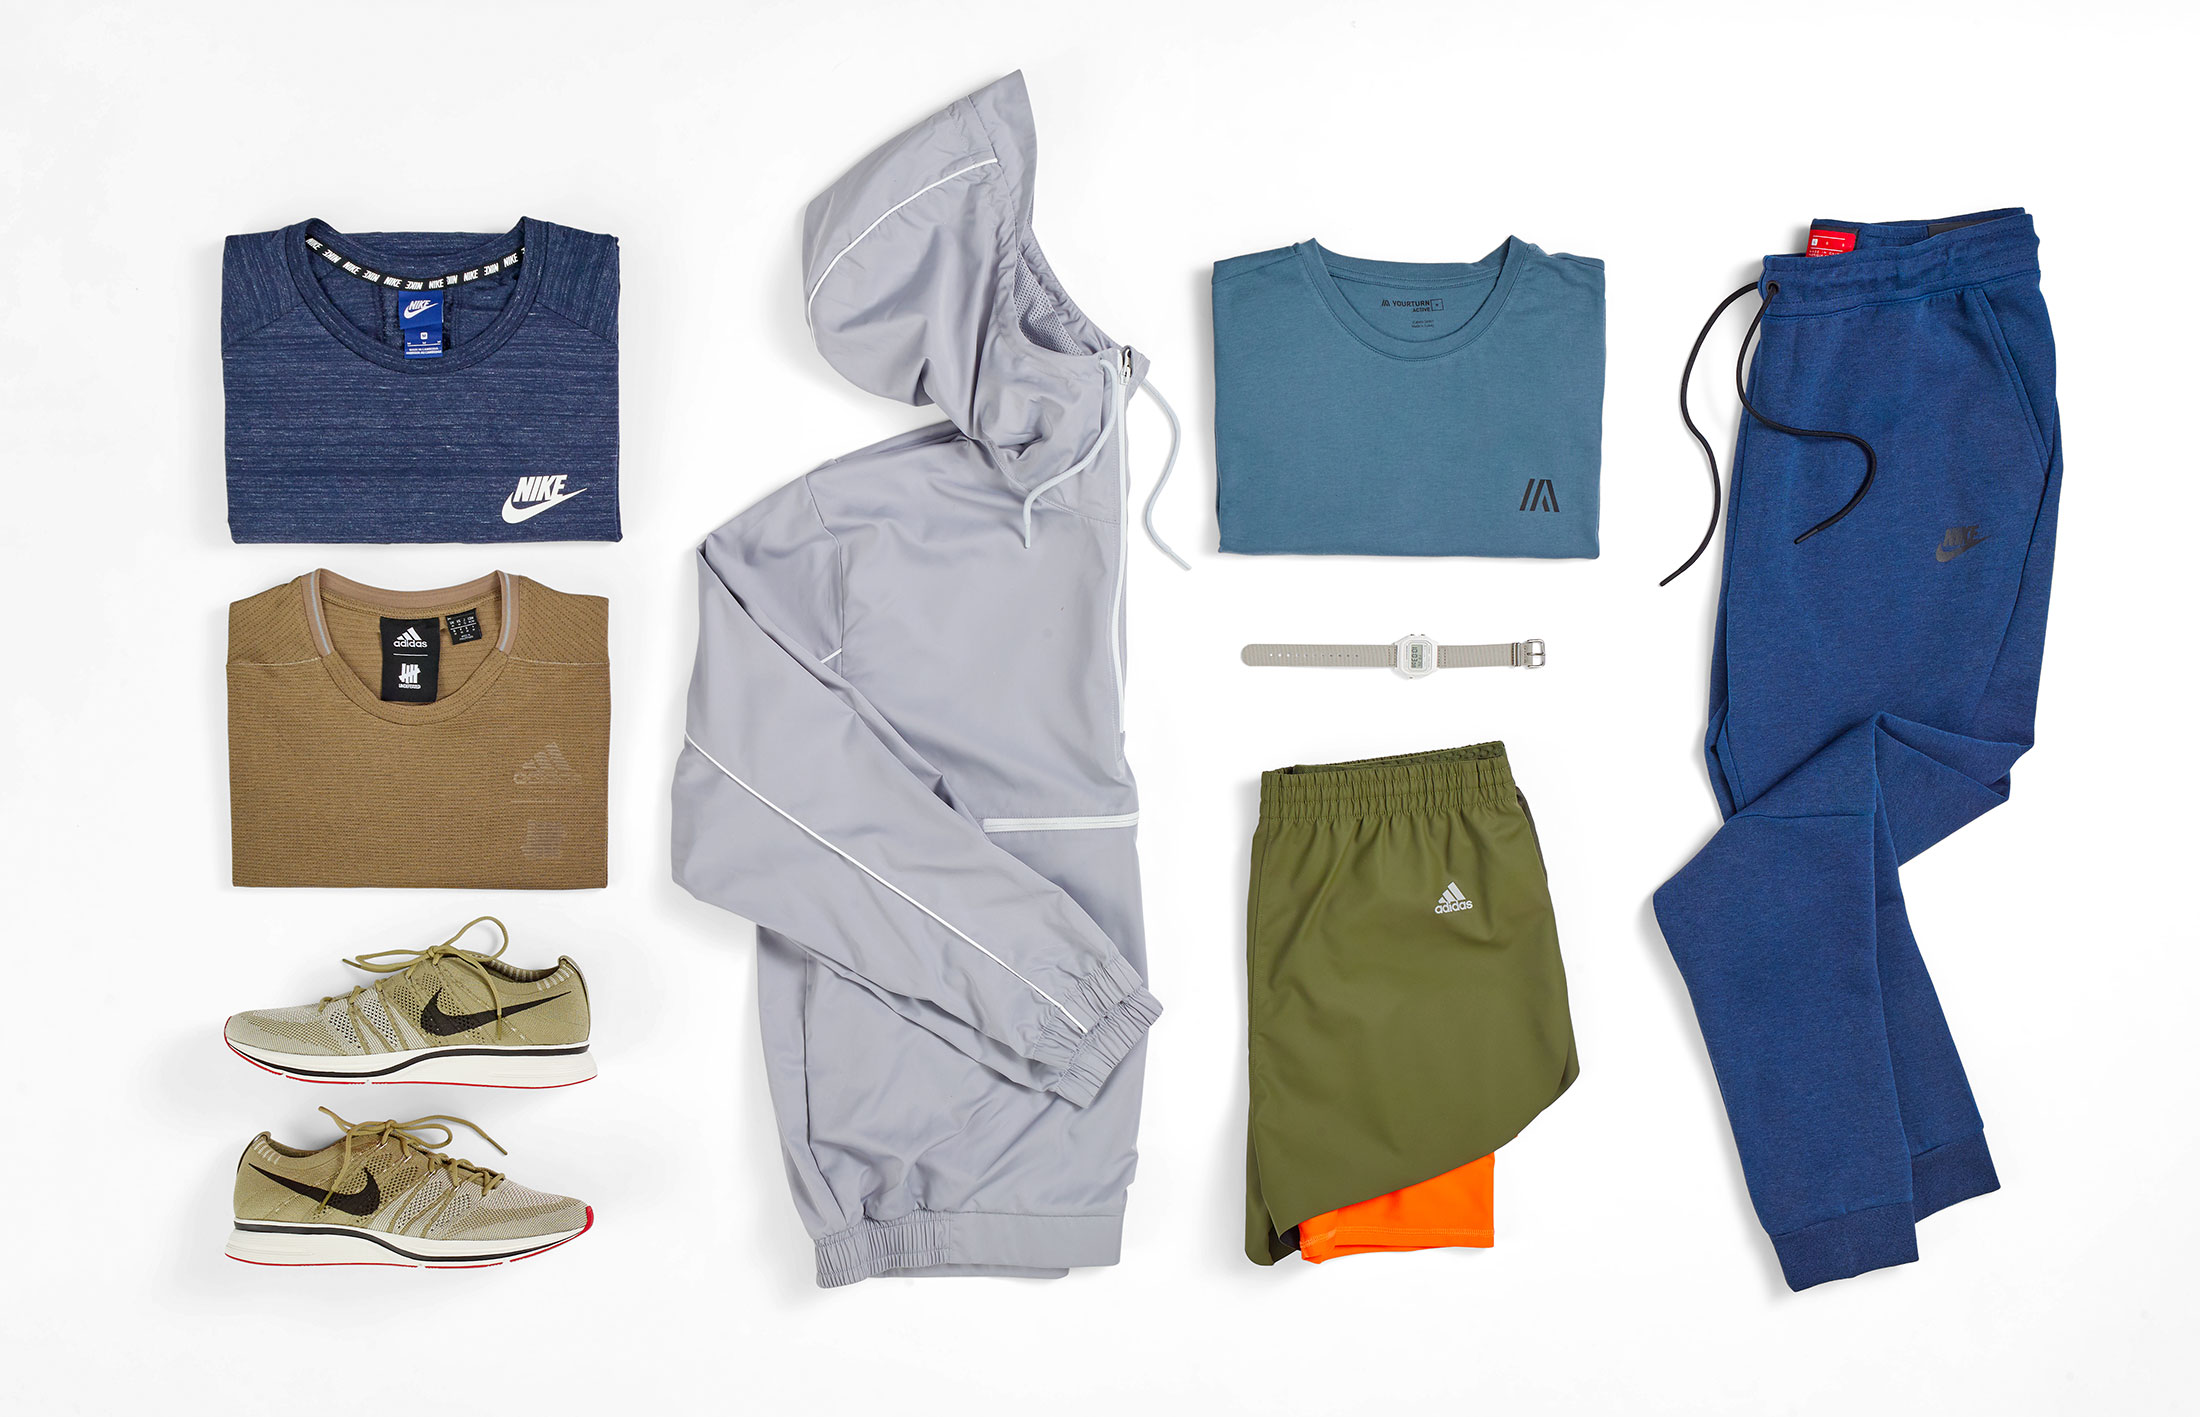 What to wear for outdoor exercise